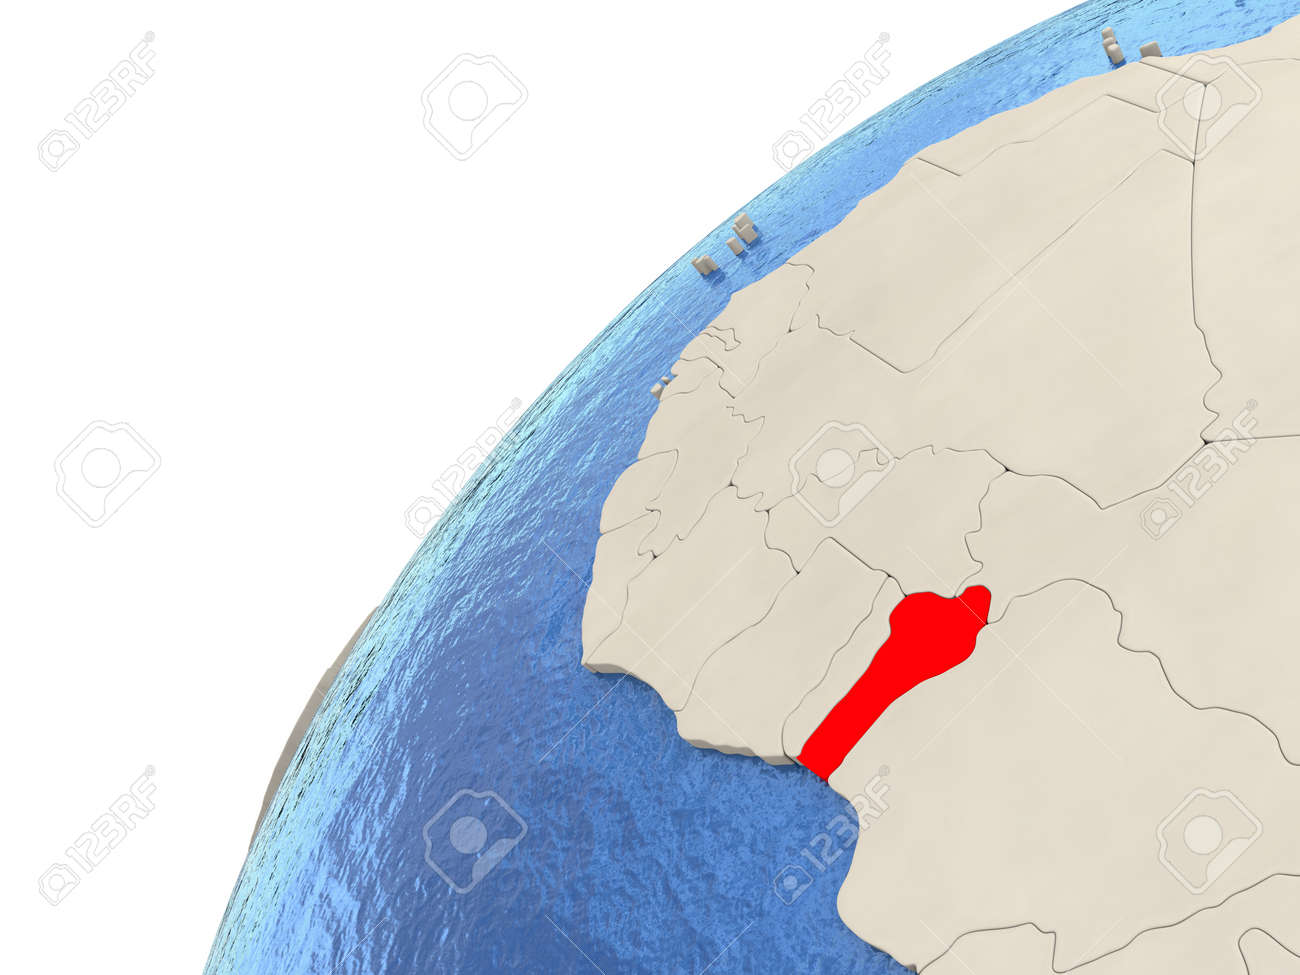 Map Of Benin On Simple Political Globe With Watery Blue Oceans ...